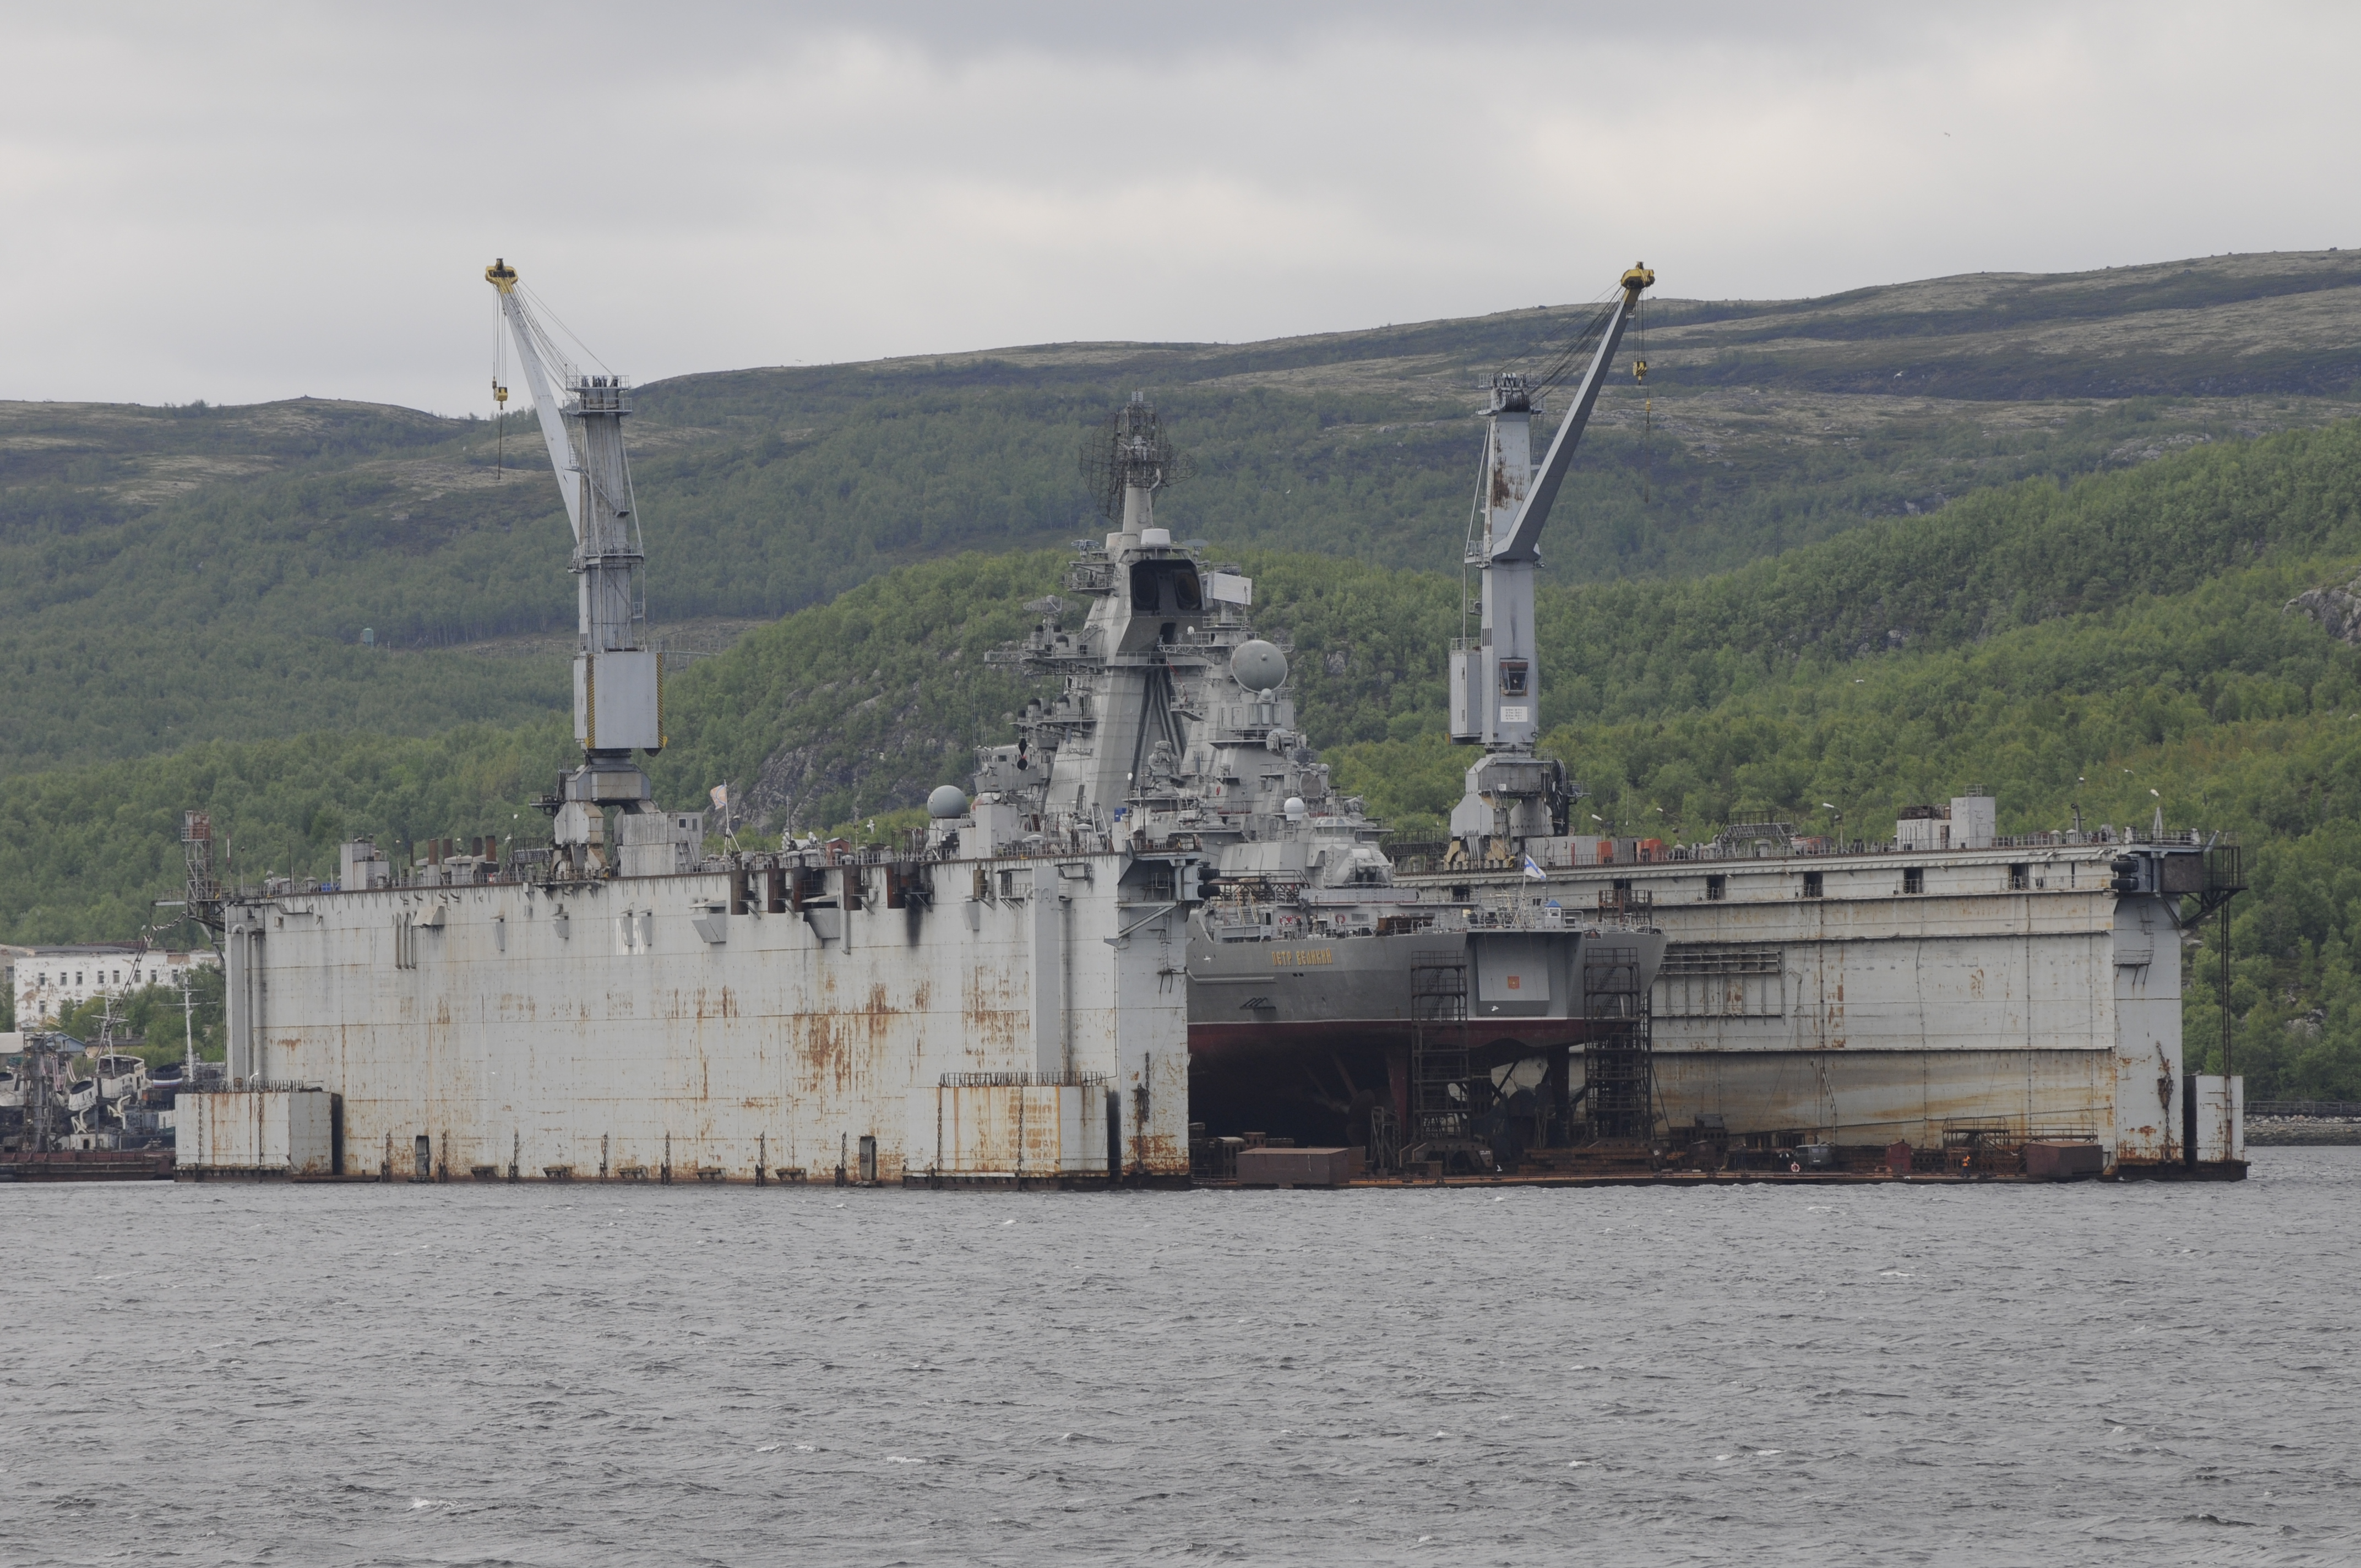 Floating dock at Murmansk shipyard sinks, four people injured